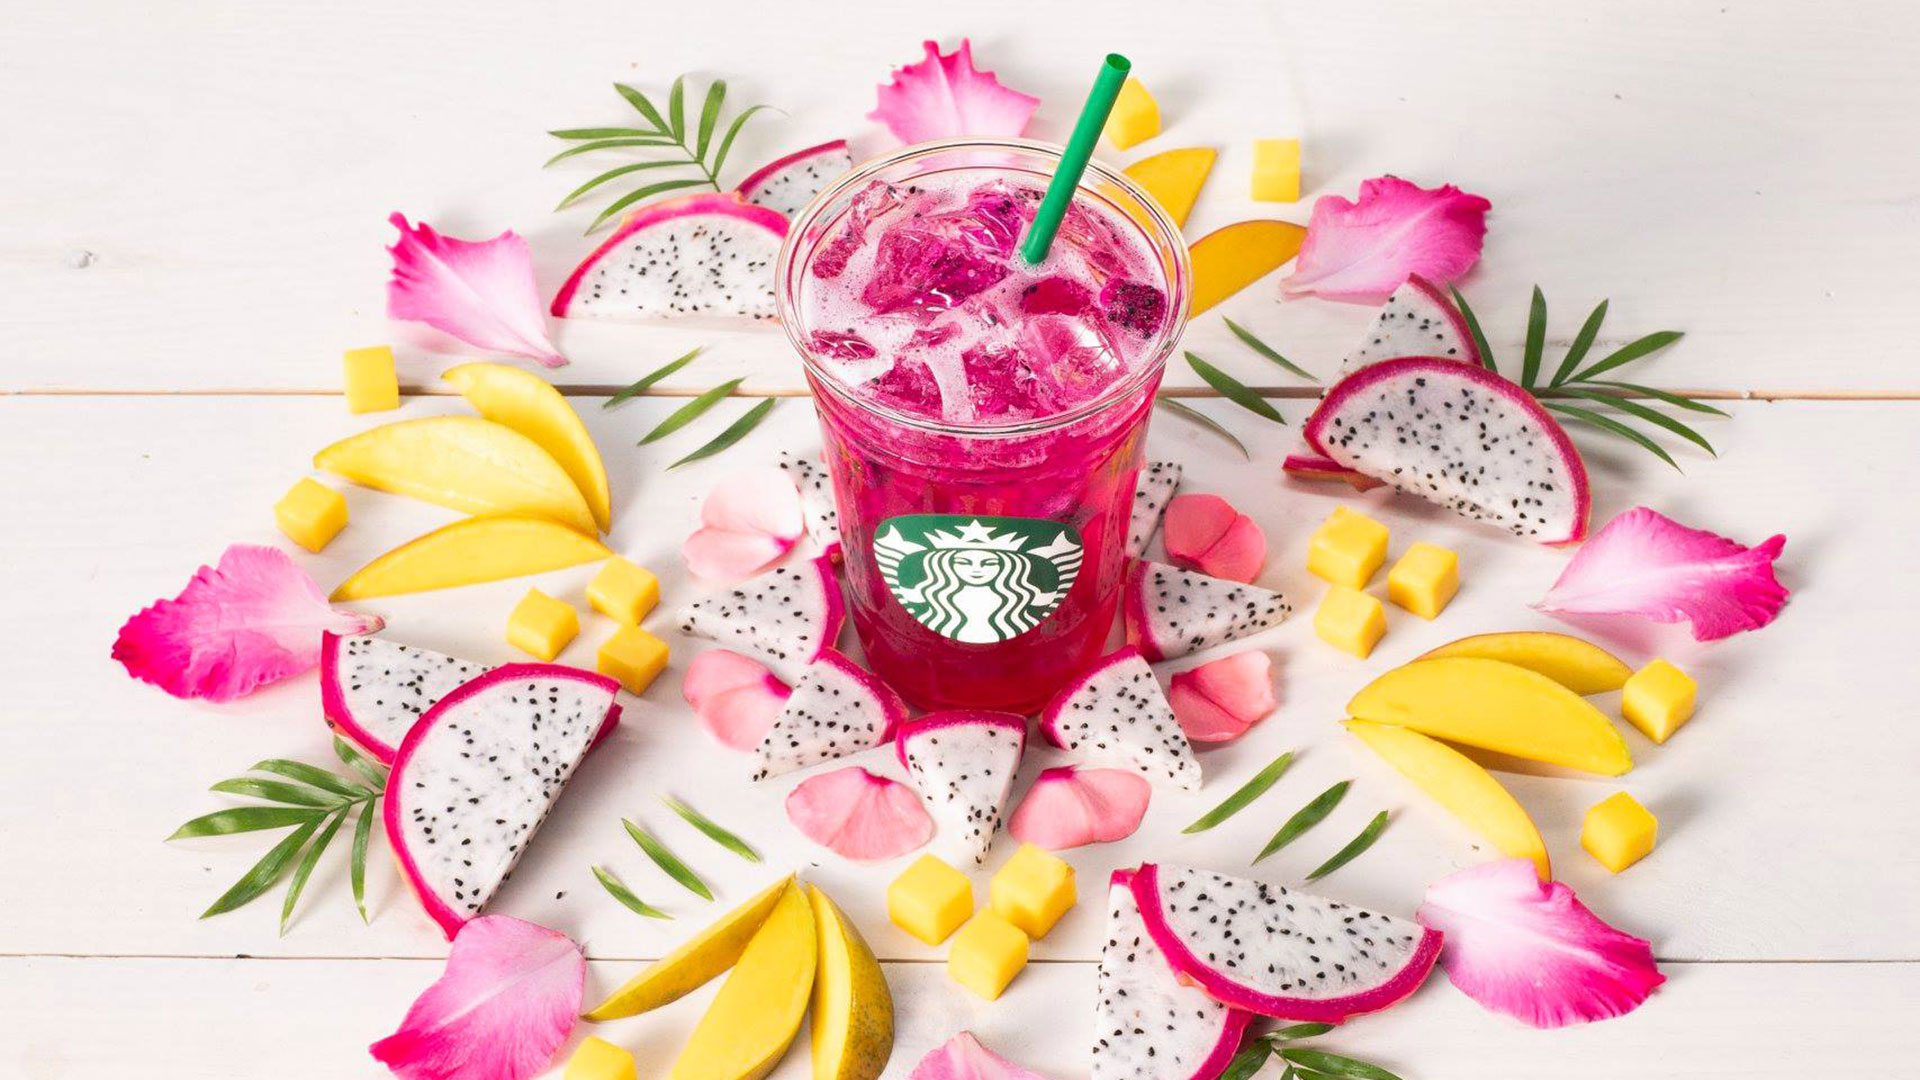 Starbucks Adds New Refresher To Its Menu Sheknows